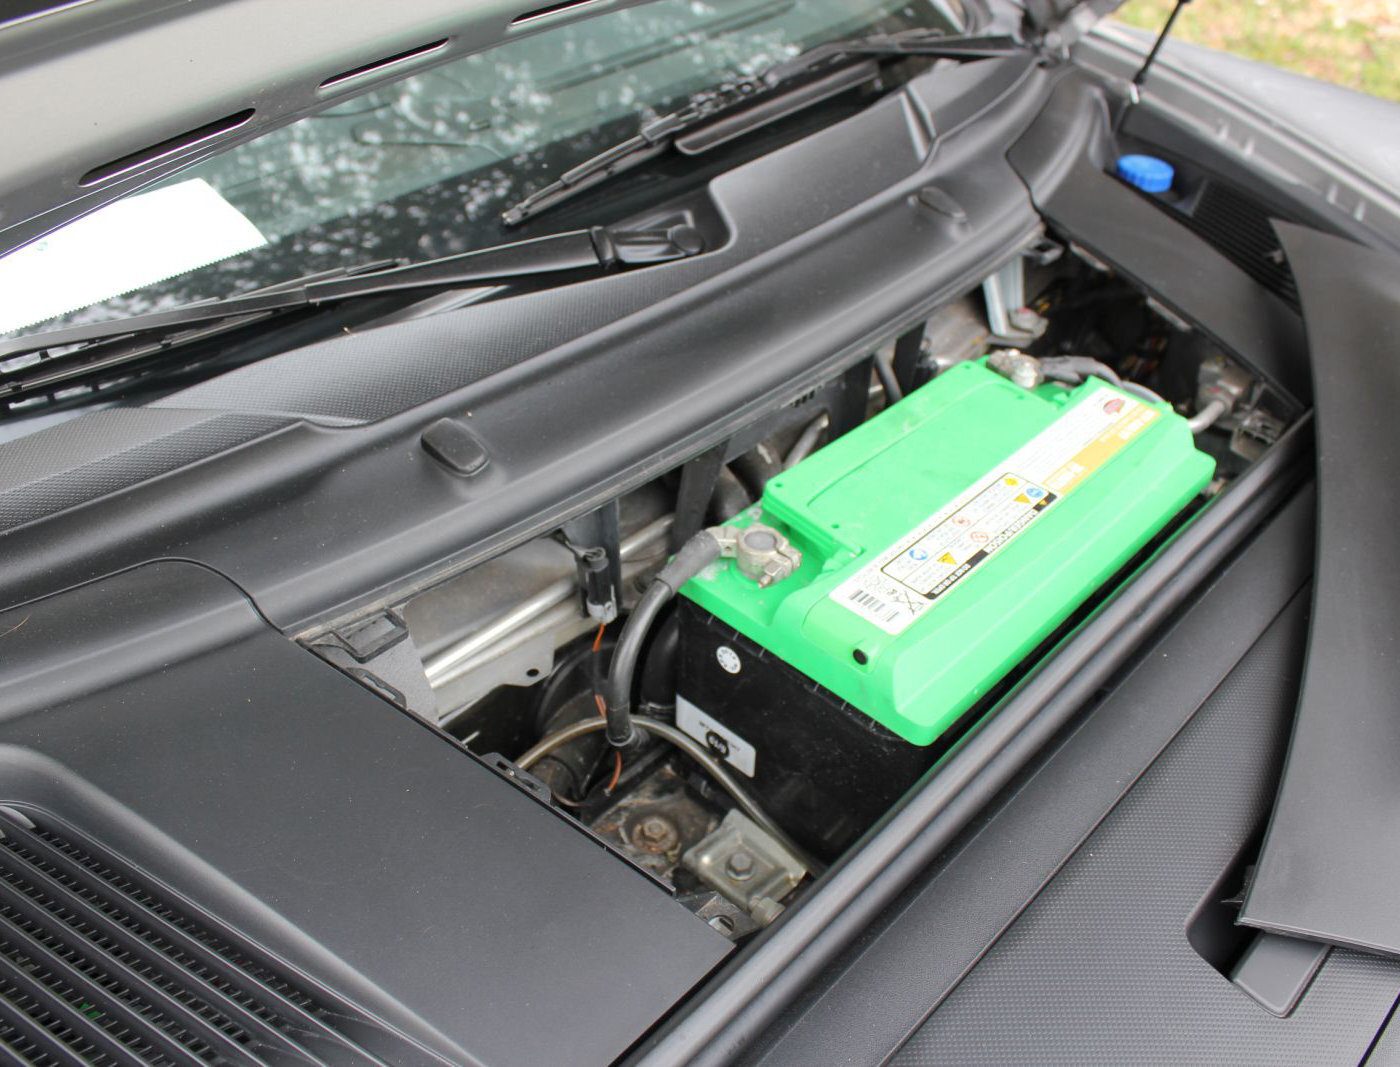 (Sample) The engine compartment from a 2009 Porsche Cayman